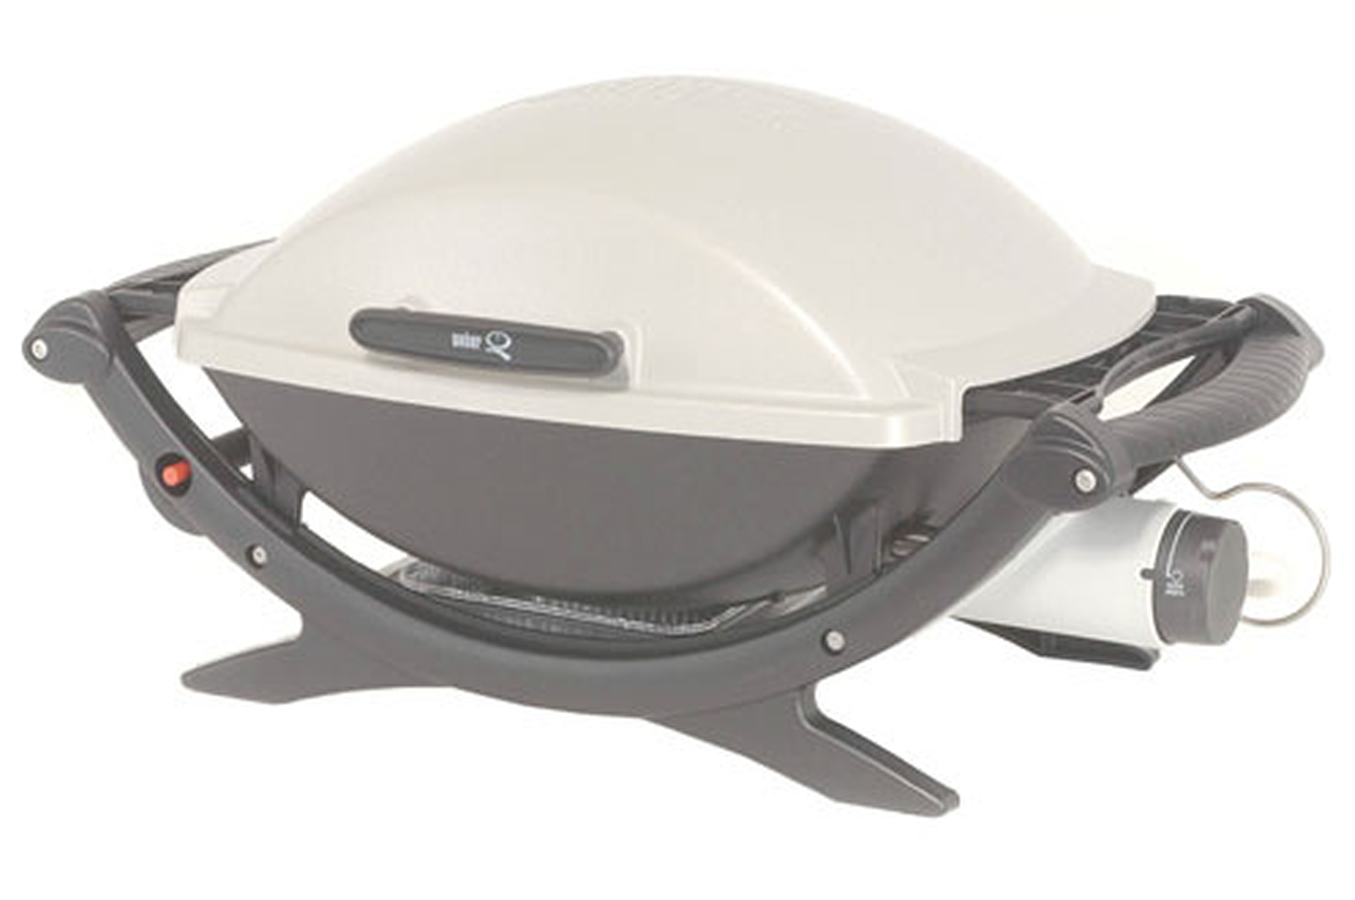 Barbecue weber q200 gaz 396053 q200 2284103 darty for Barbecue weber gaz q120